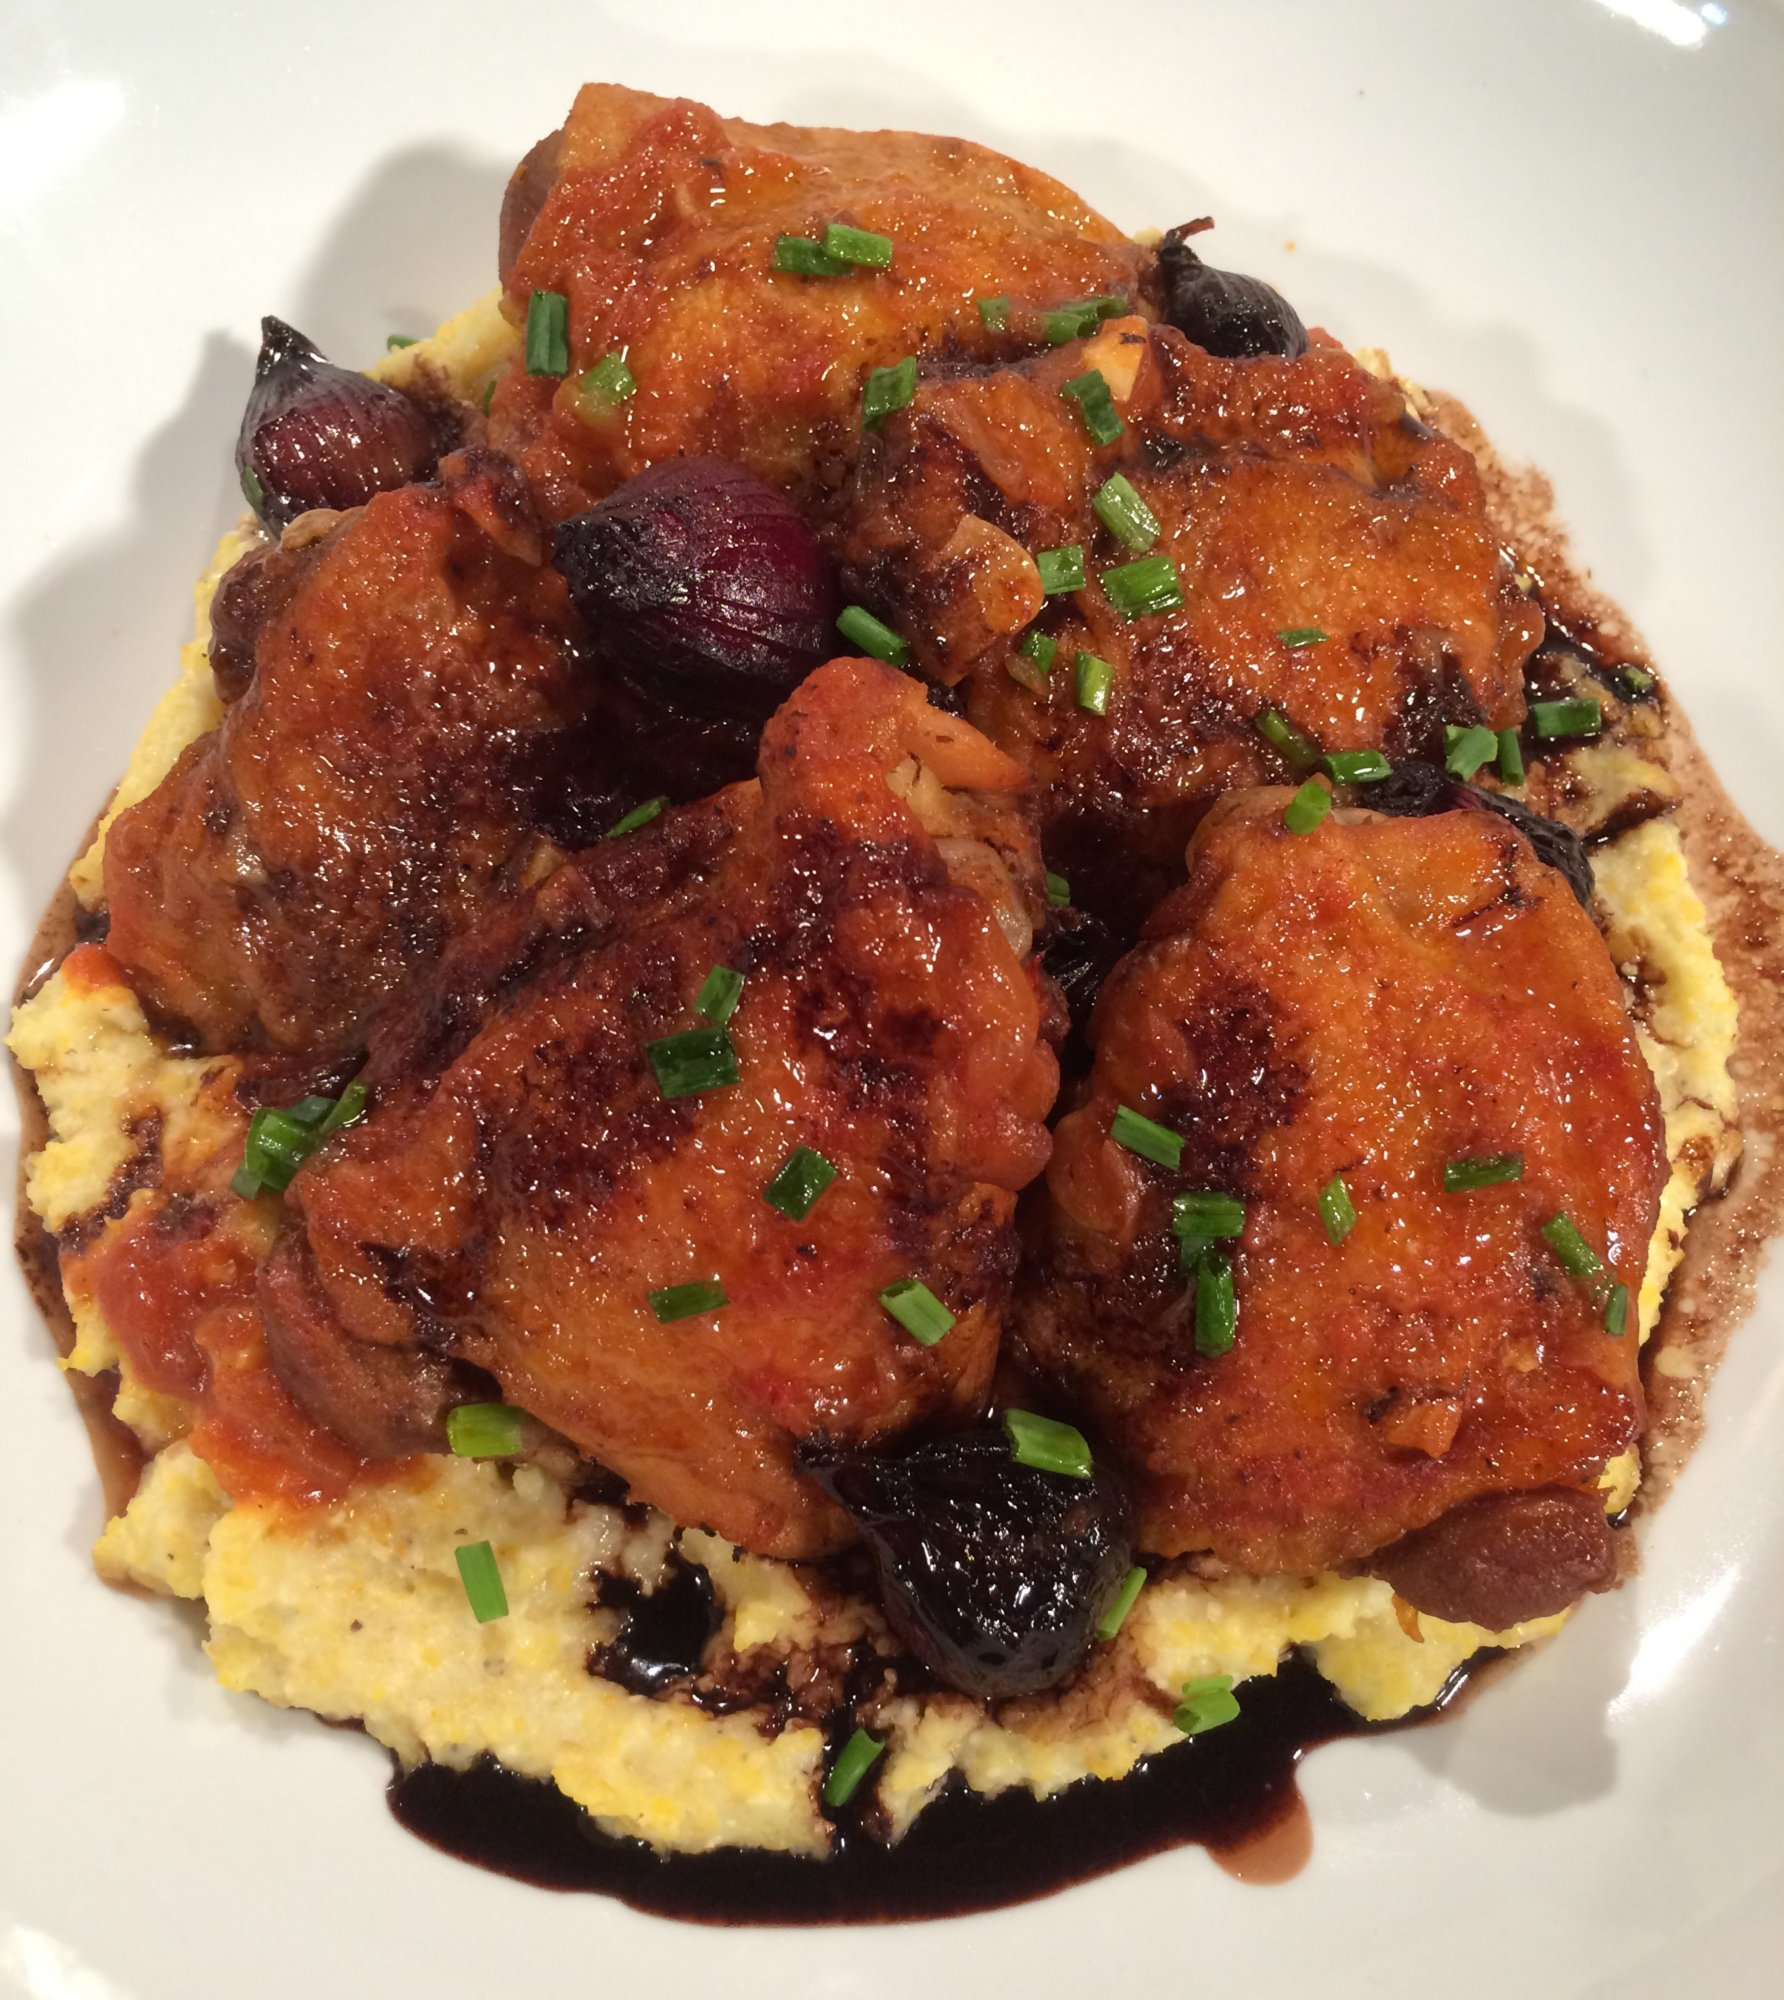 Braised Chicken Thighs with Fontina Polenta and Balsamic Onions